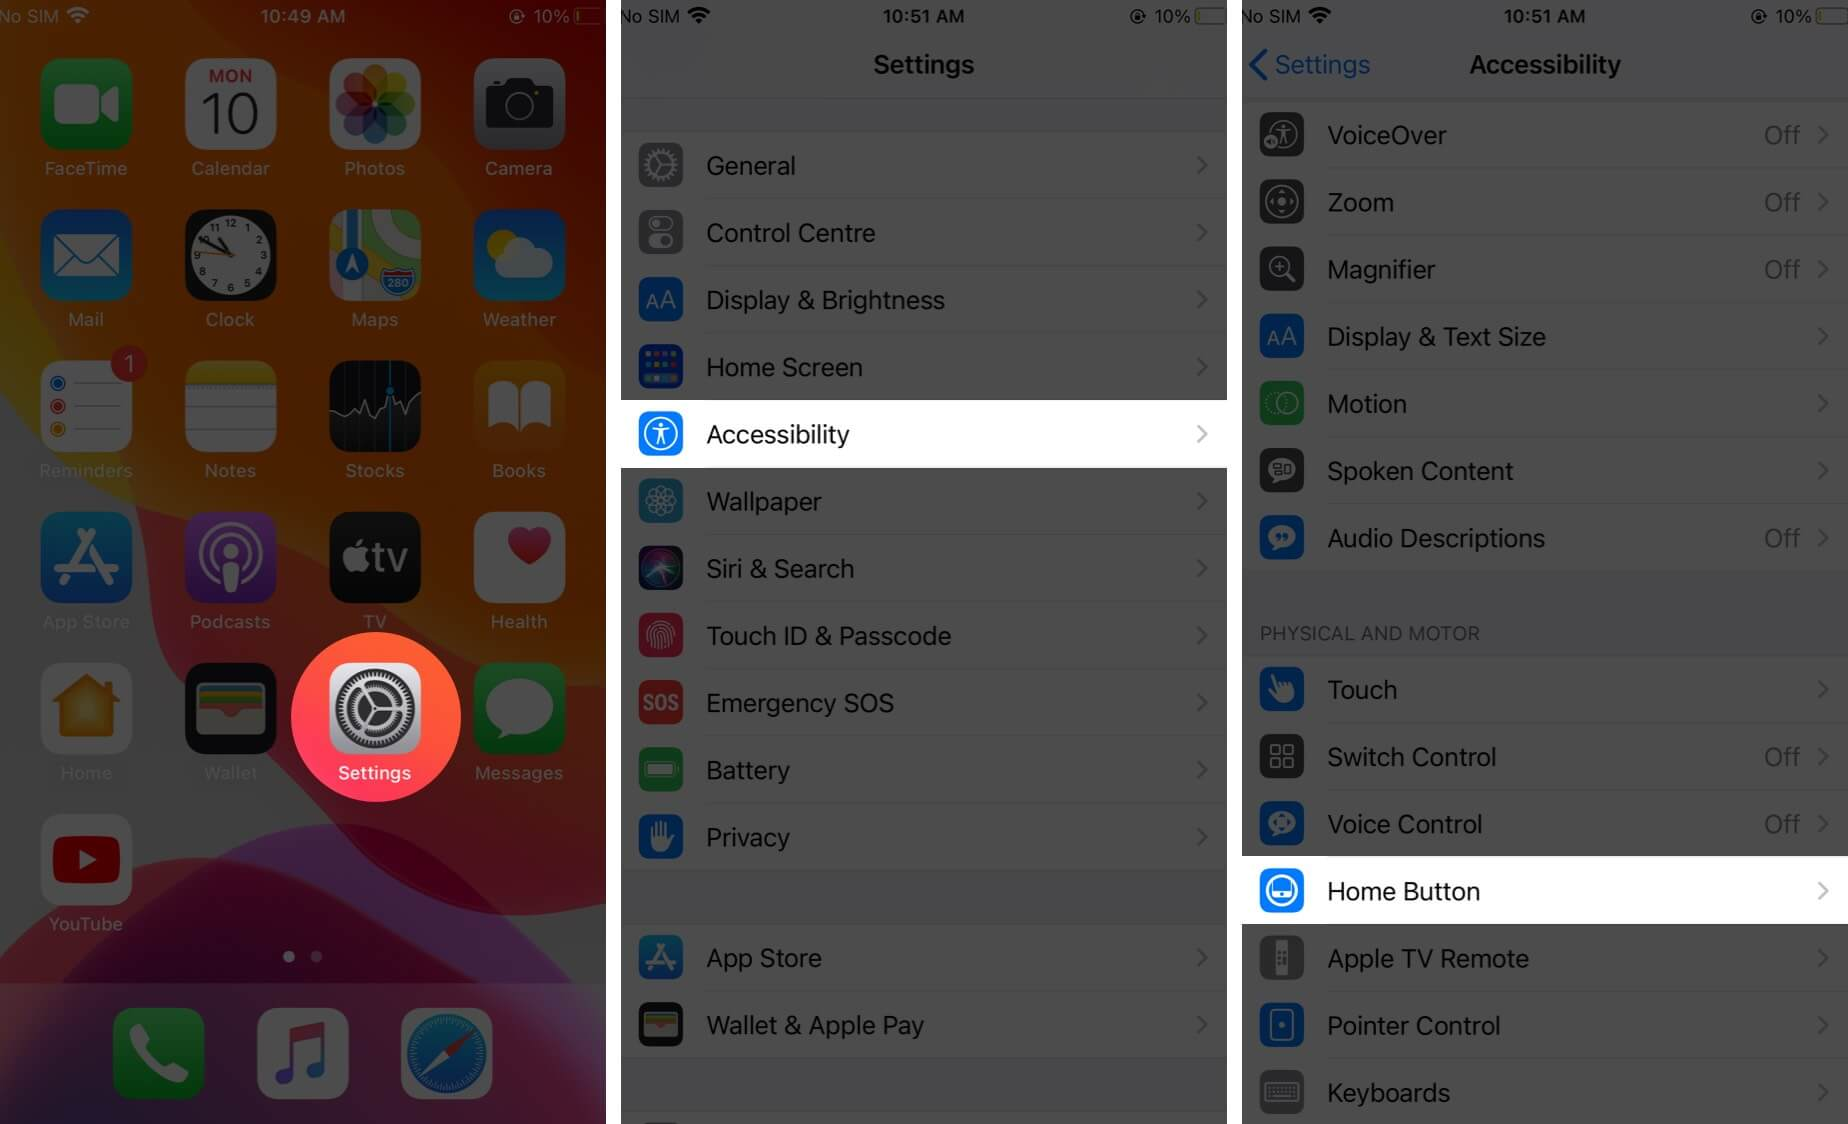 open settings tap on accessibility and then tap on home button on iphone